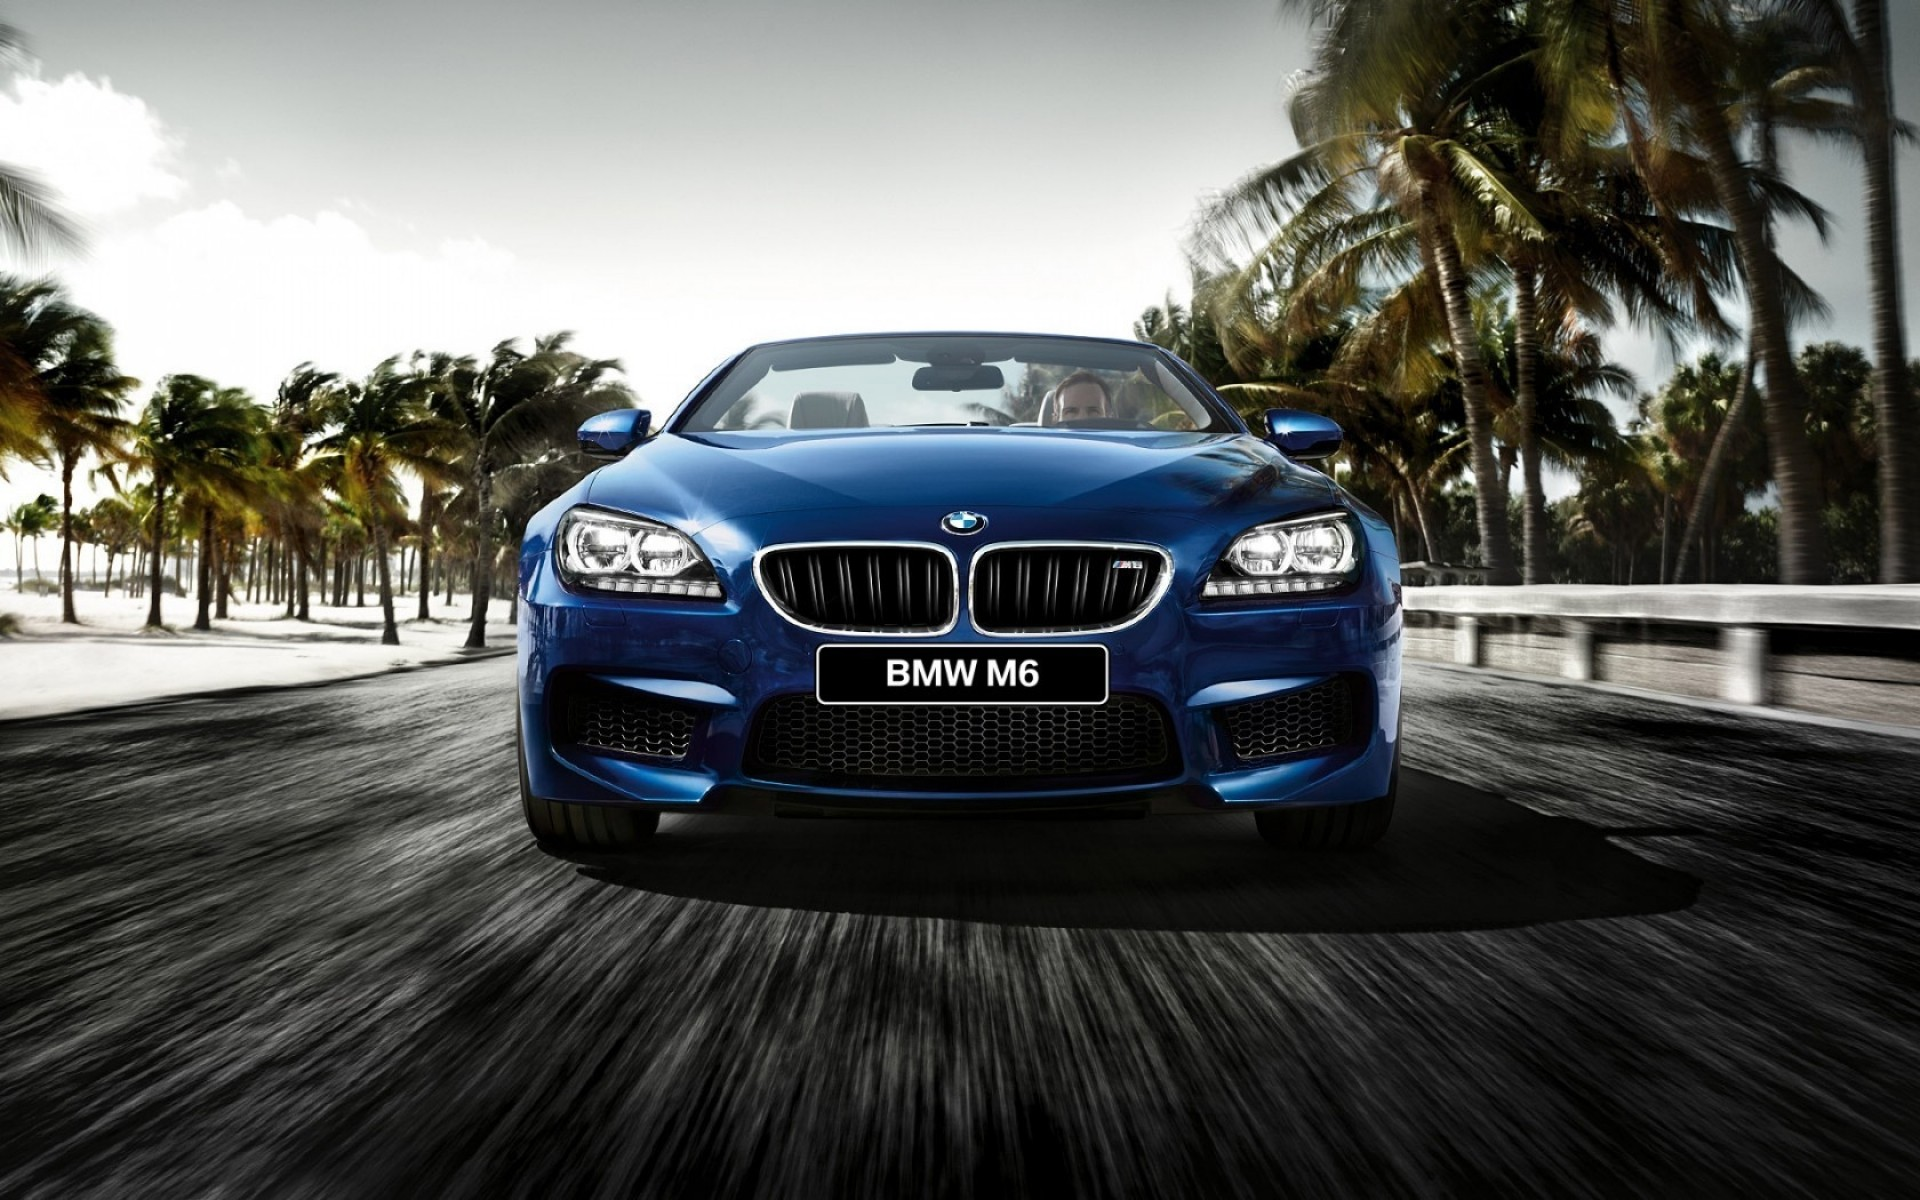 bmw car vehicle hurry pavement asphalt fast road transportation system race action blur